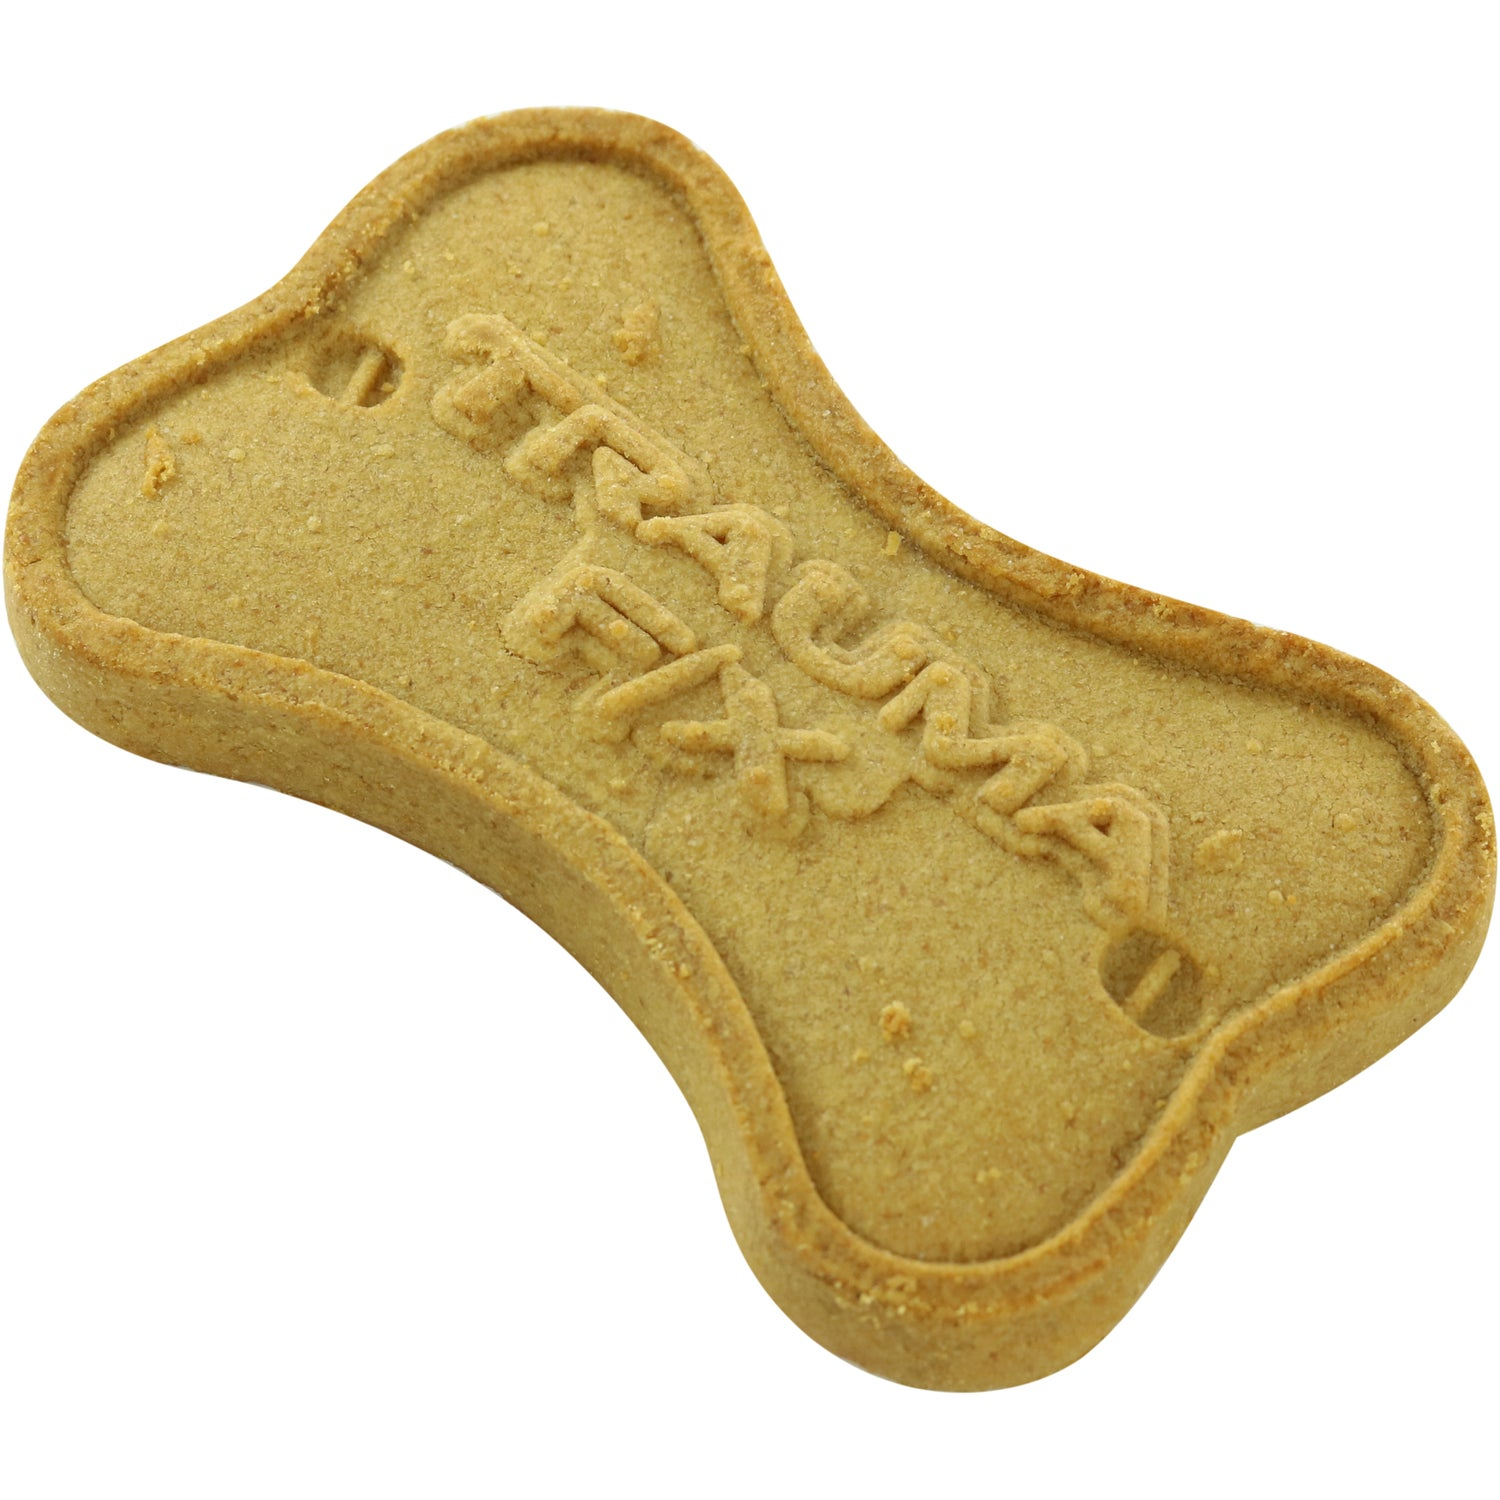 94517c640de7 CLICK HERE to Order Bone Shaped Dog Biscuits Printed with Your Logo for 94¢  Ea.